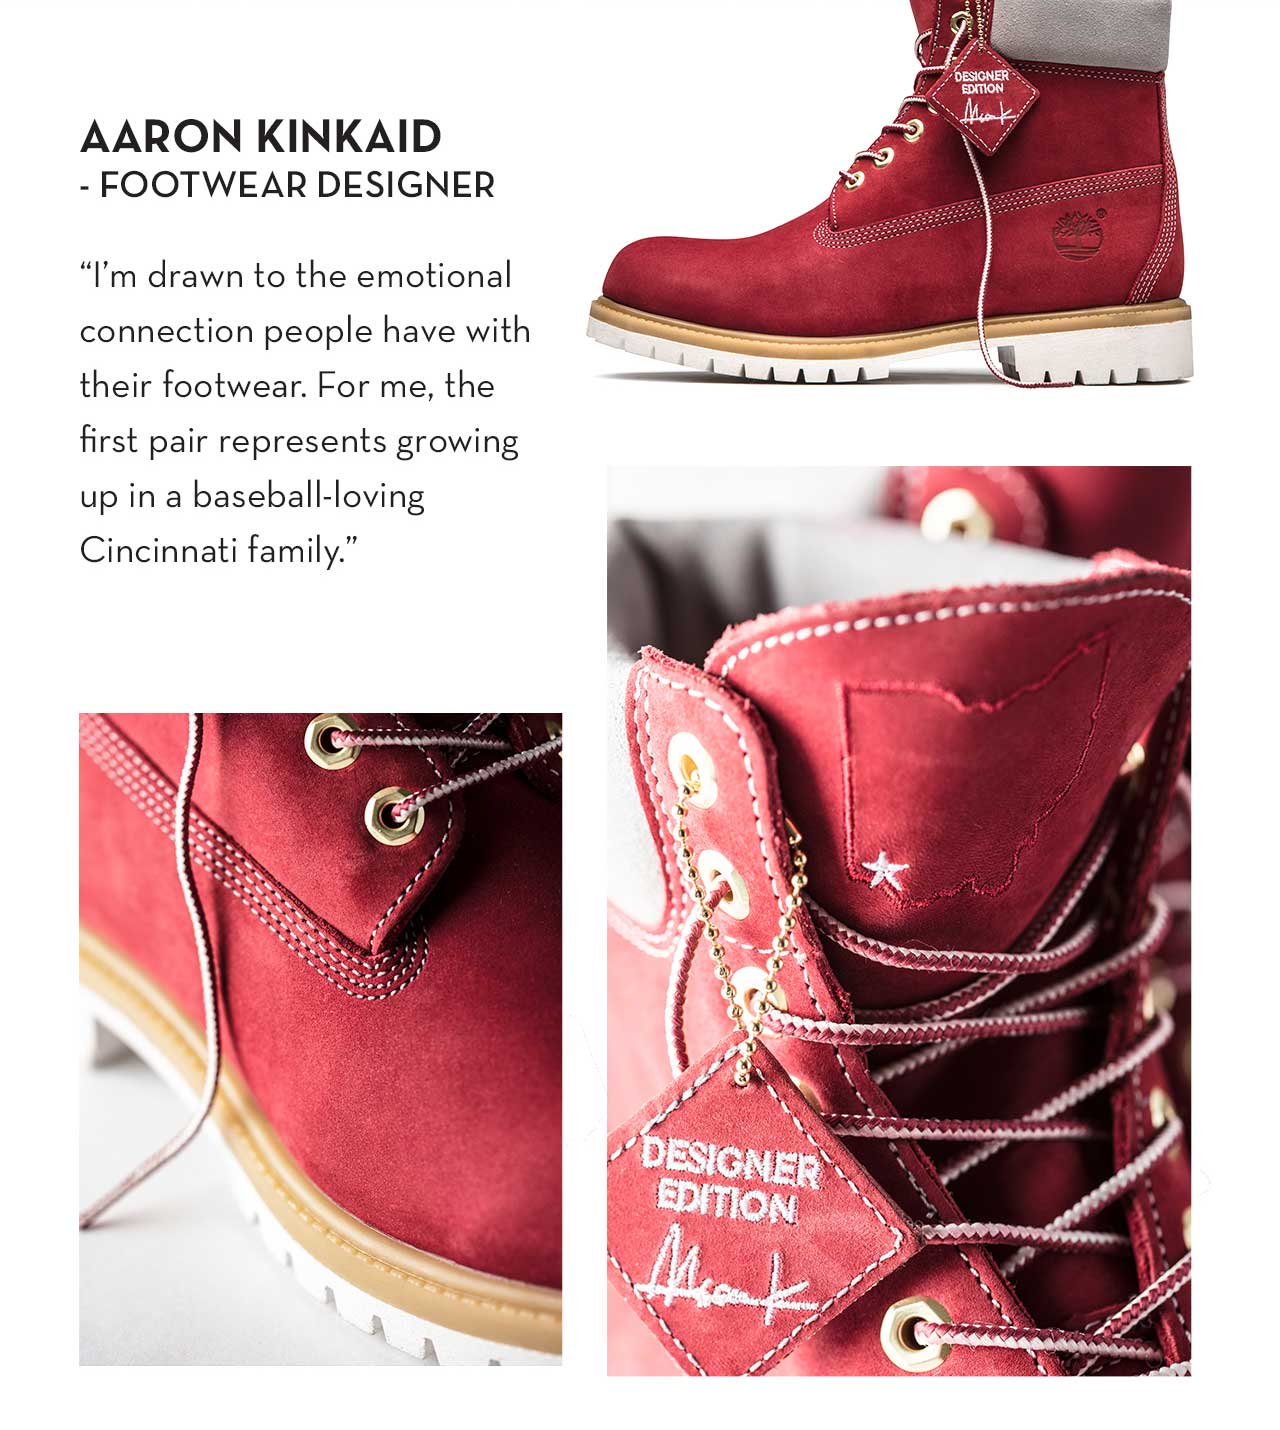 "Aaron Kinkaid - Footwear Designer ""I'm drawn to the emotional connection people have with their footwear. For me, the first pair represents growing up in a baseball-loving Cincinnati family."""